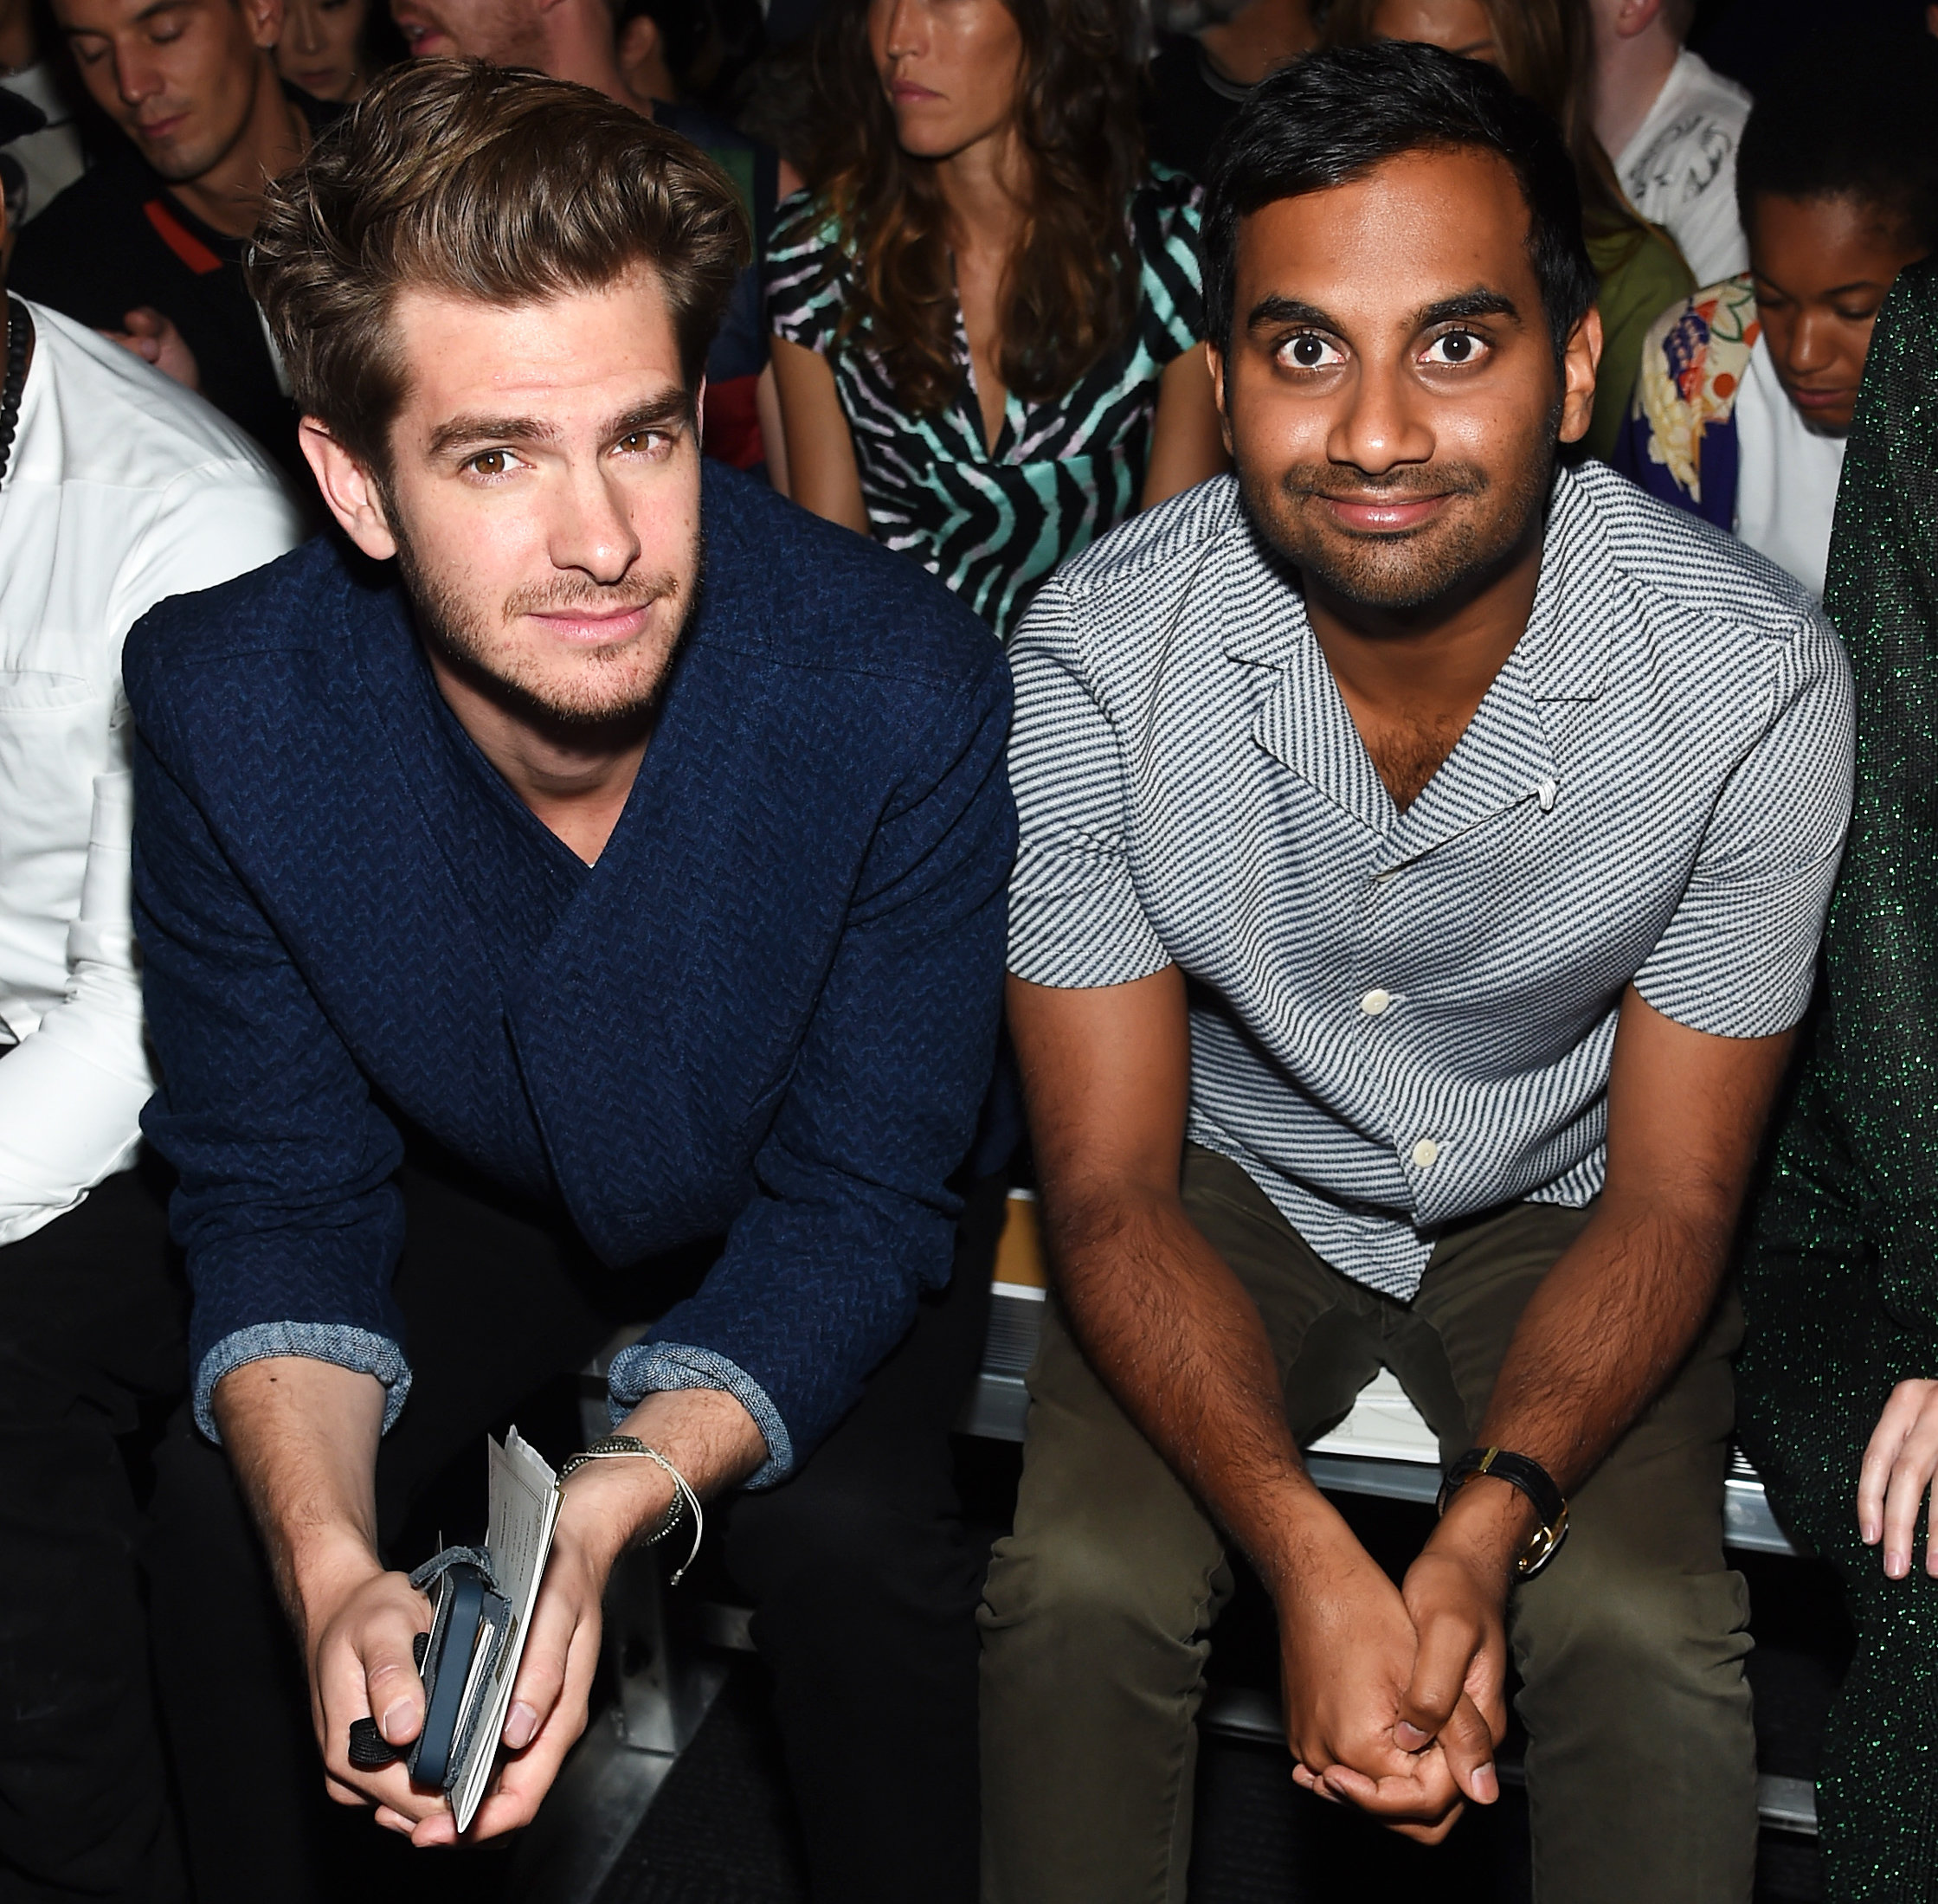 NYFW Opening Ceremony - Andrew Garfield and Aziz Ansari - September 11, 2016